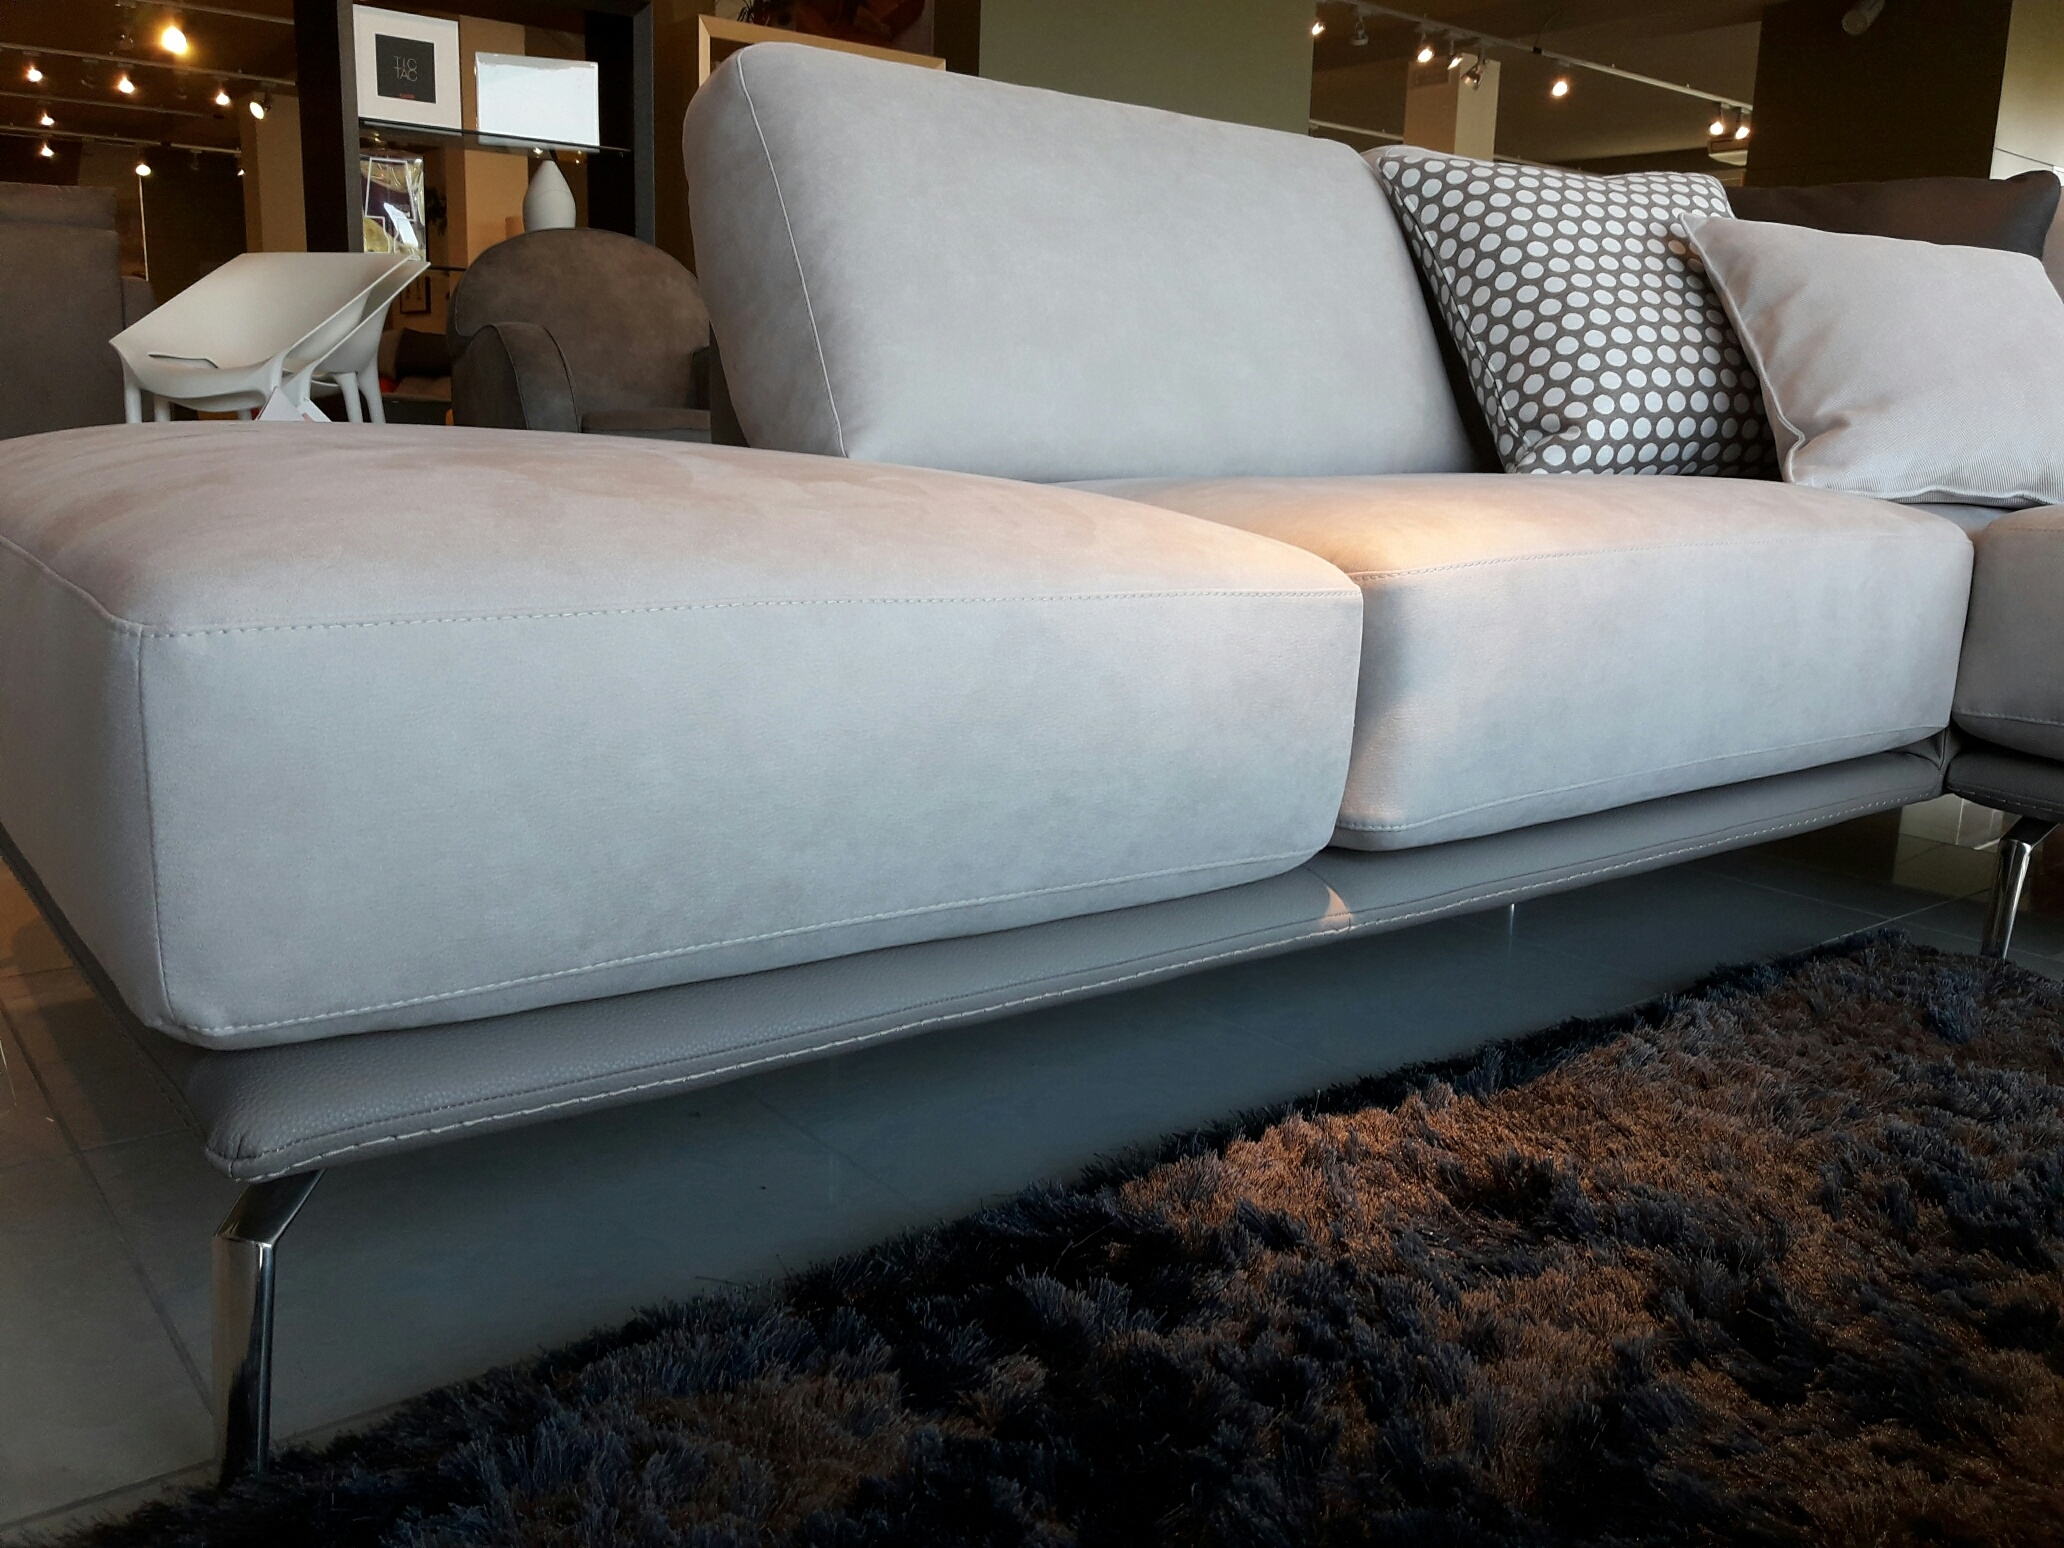 Max Divani Leather Sofa Max Divani Franco Ferri The Best Max Divani Ideas On